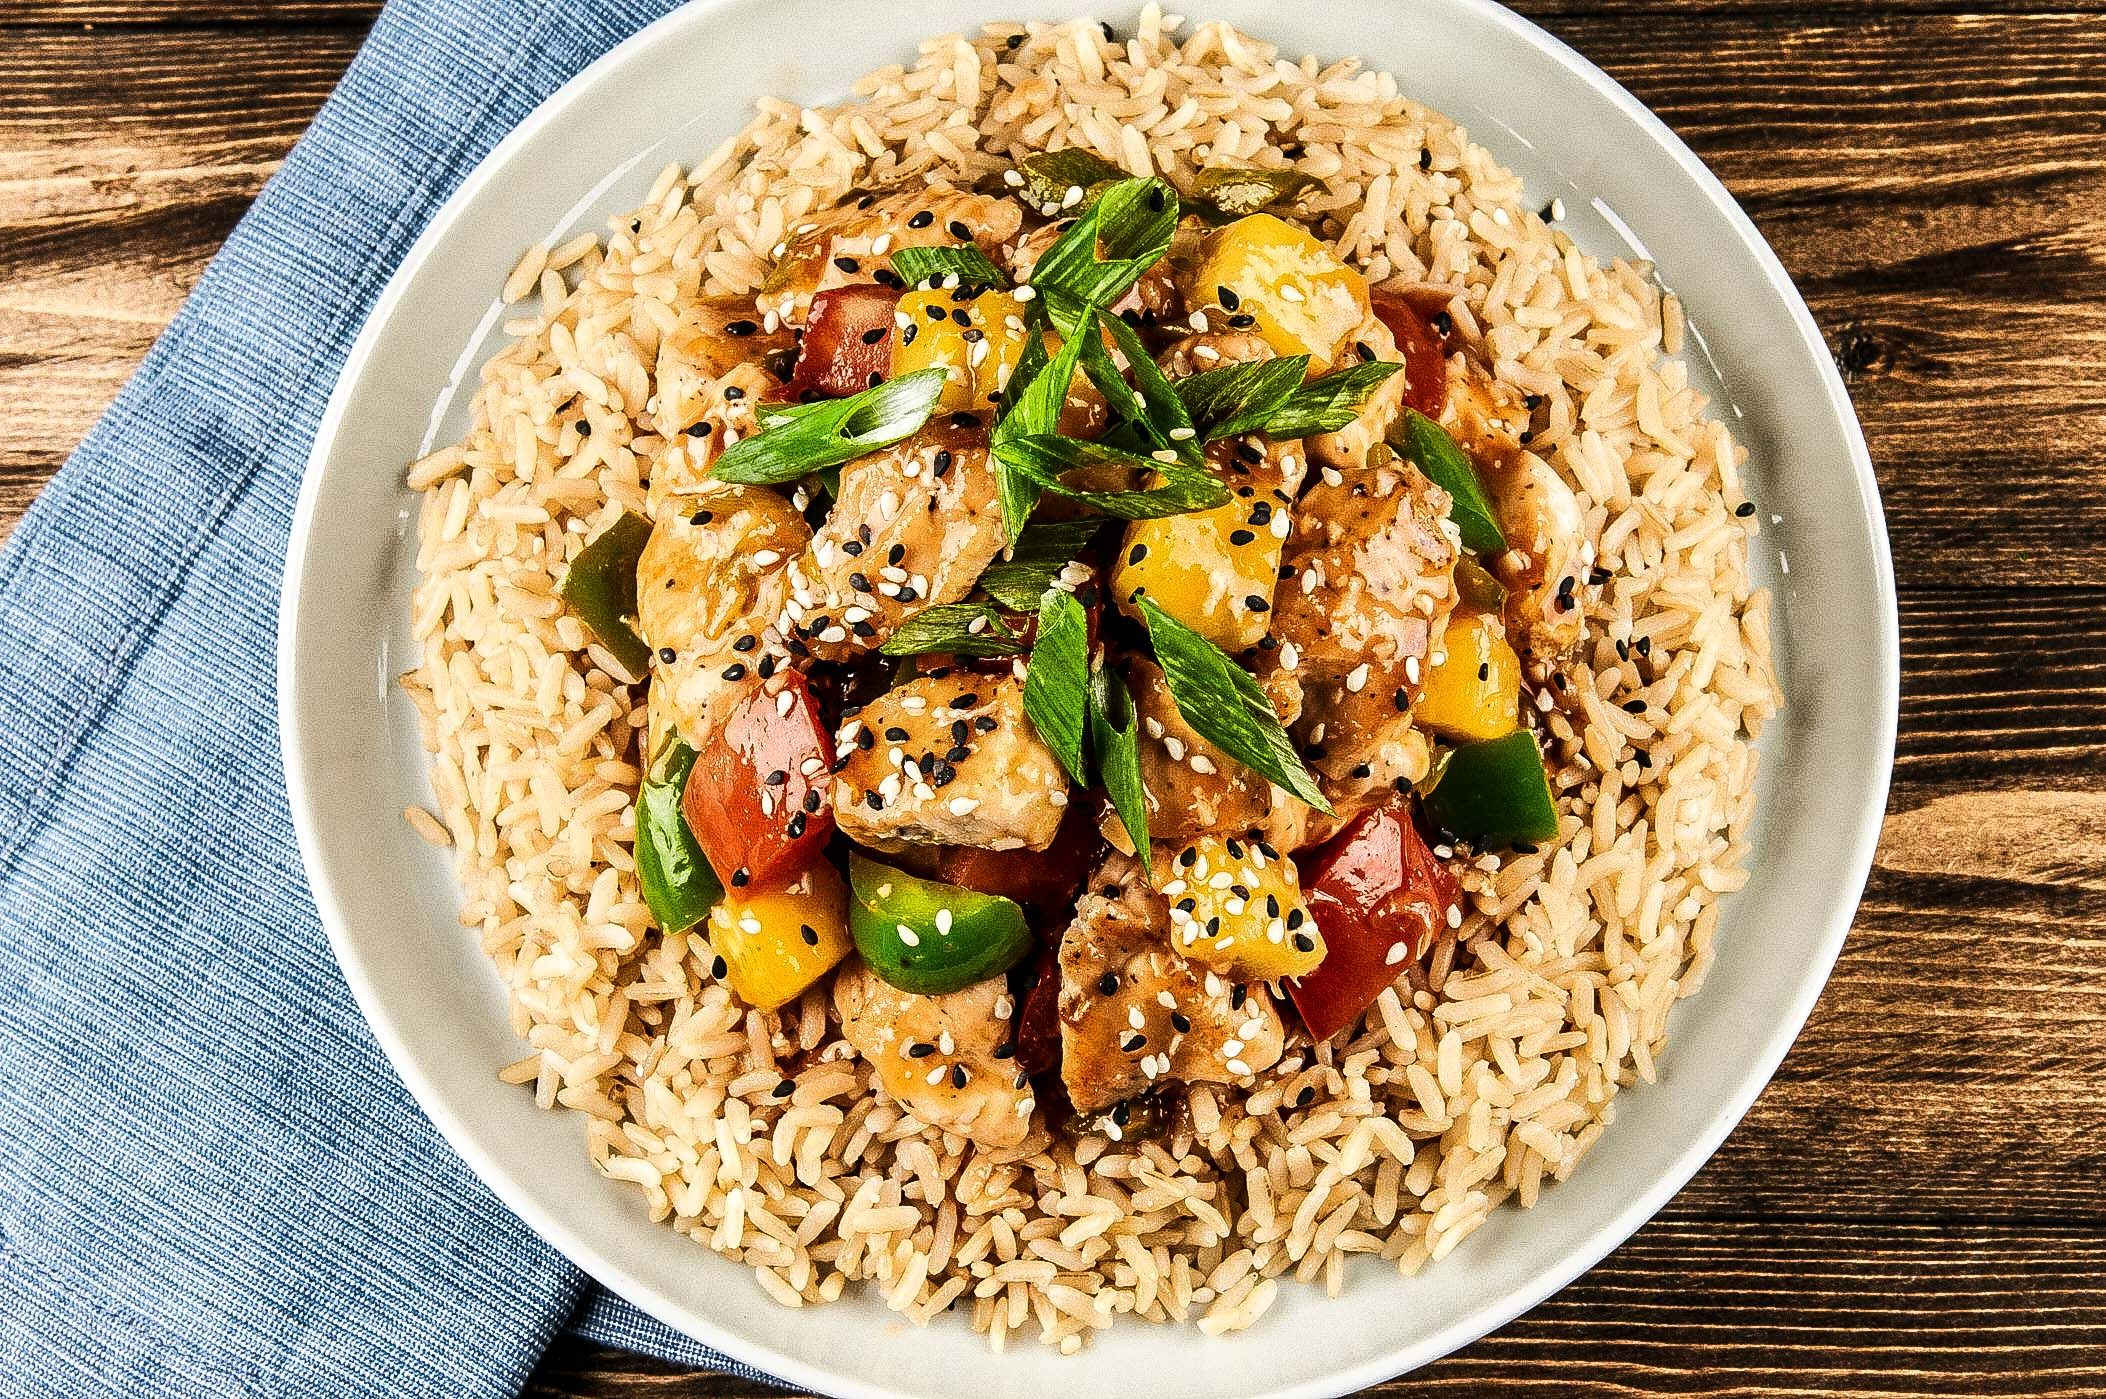 Blue apron green chef - Healthy Takeout Sweet And Sour Chicken With Brown Rice And Green Bell Pepper Home Chefblue Aprongreen